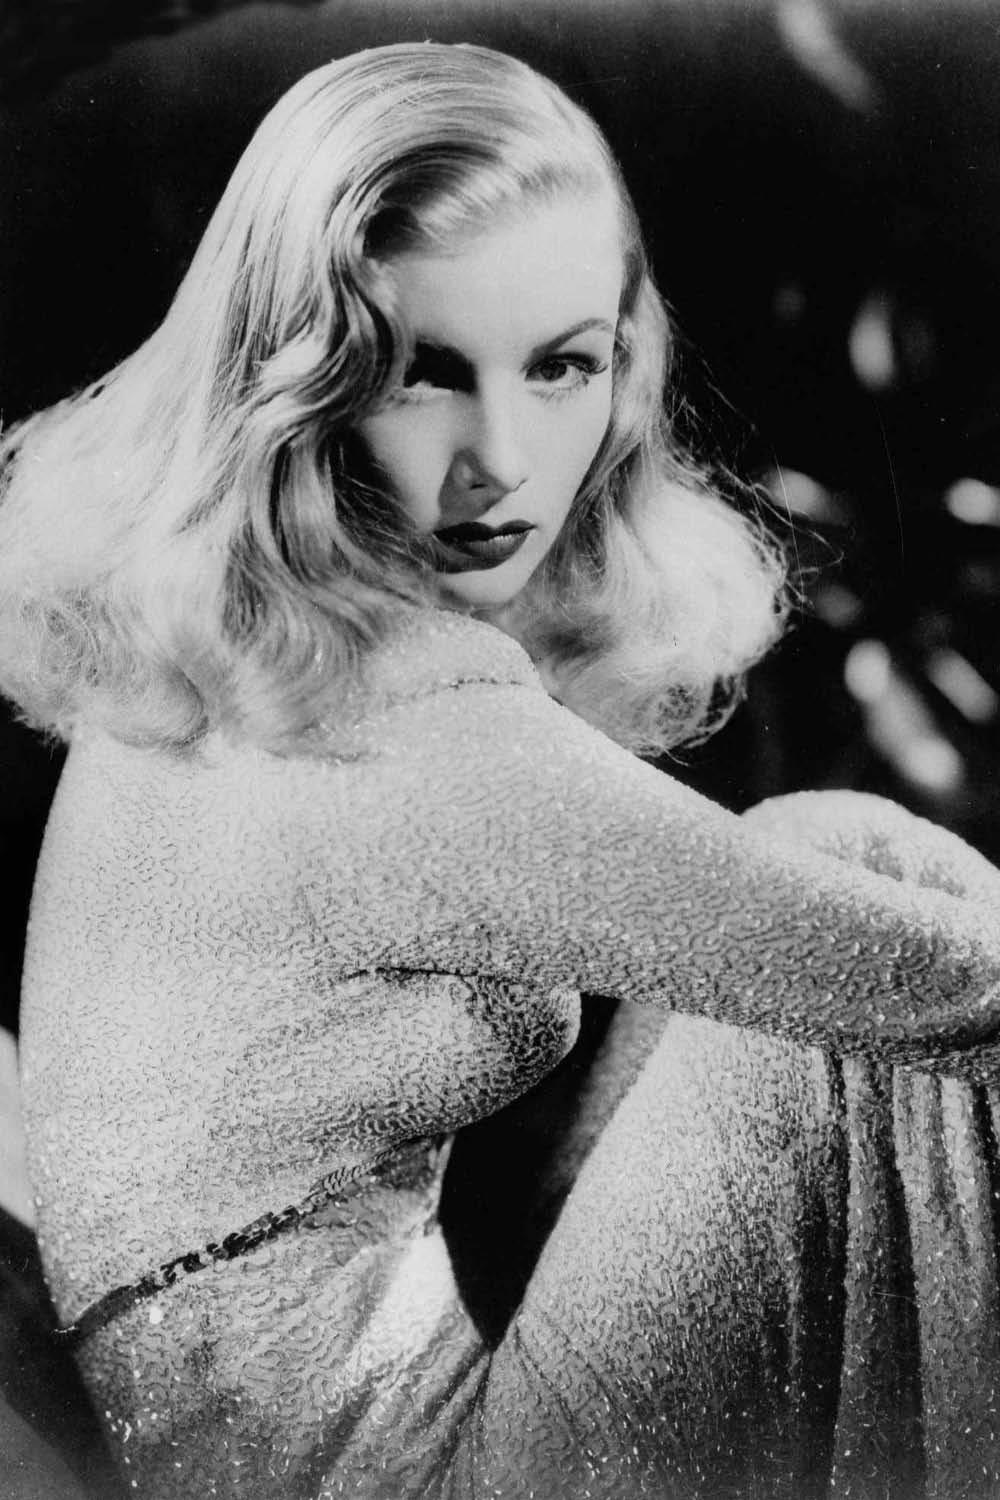 Veronica Lake horoscopo escorpio. Veronica Lake